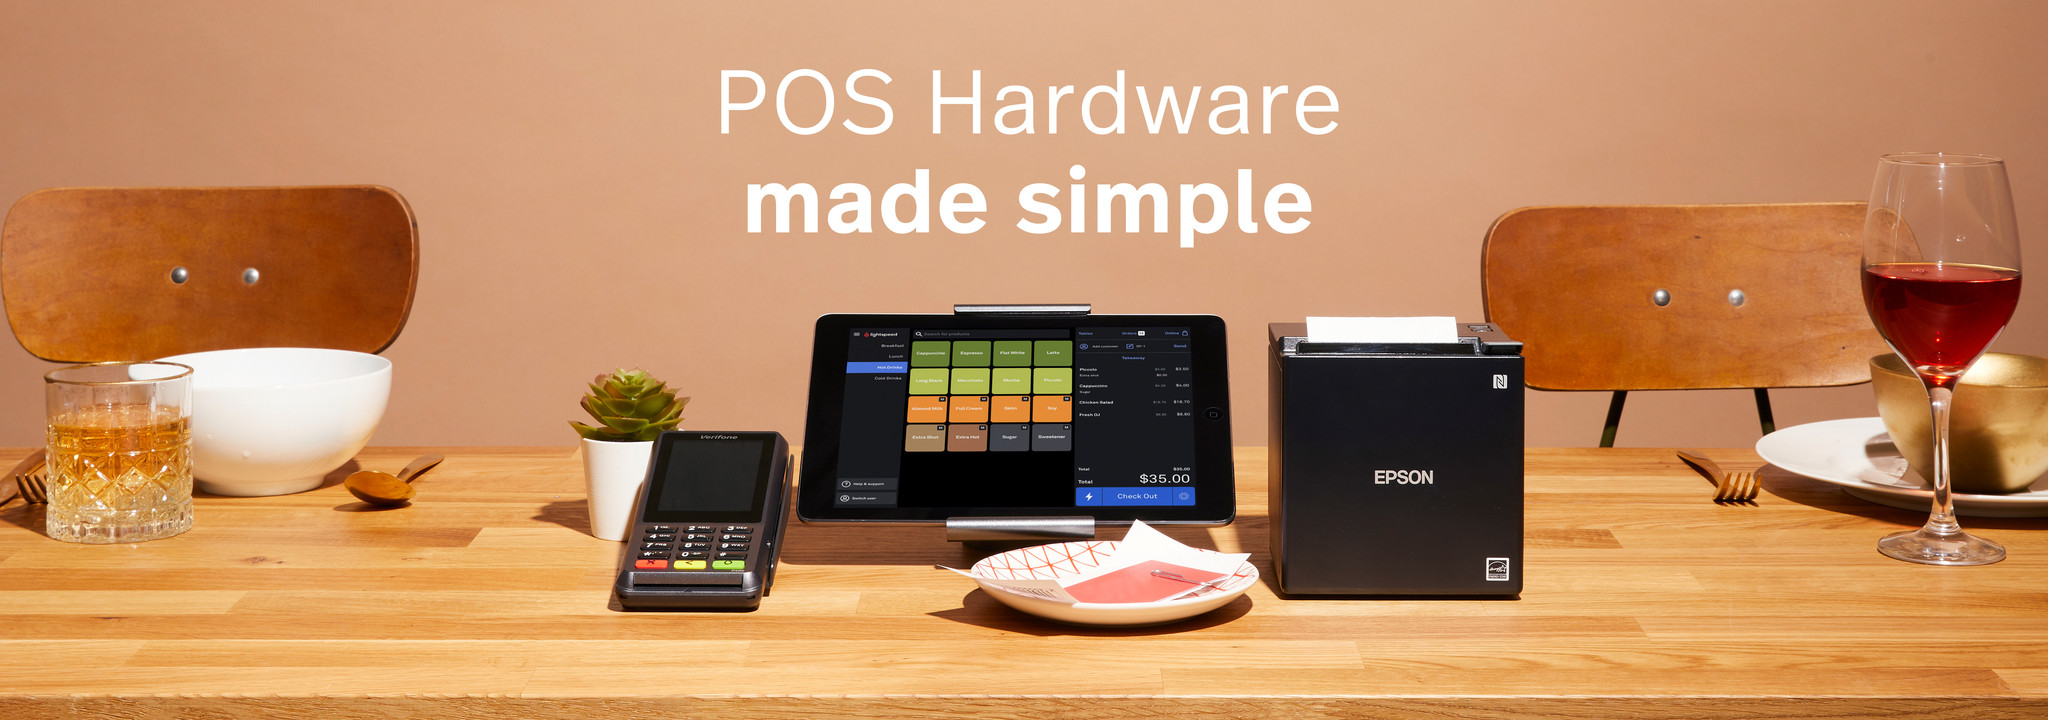 POS Hardware made simple